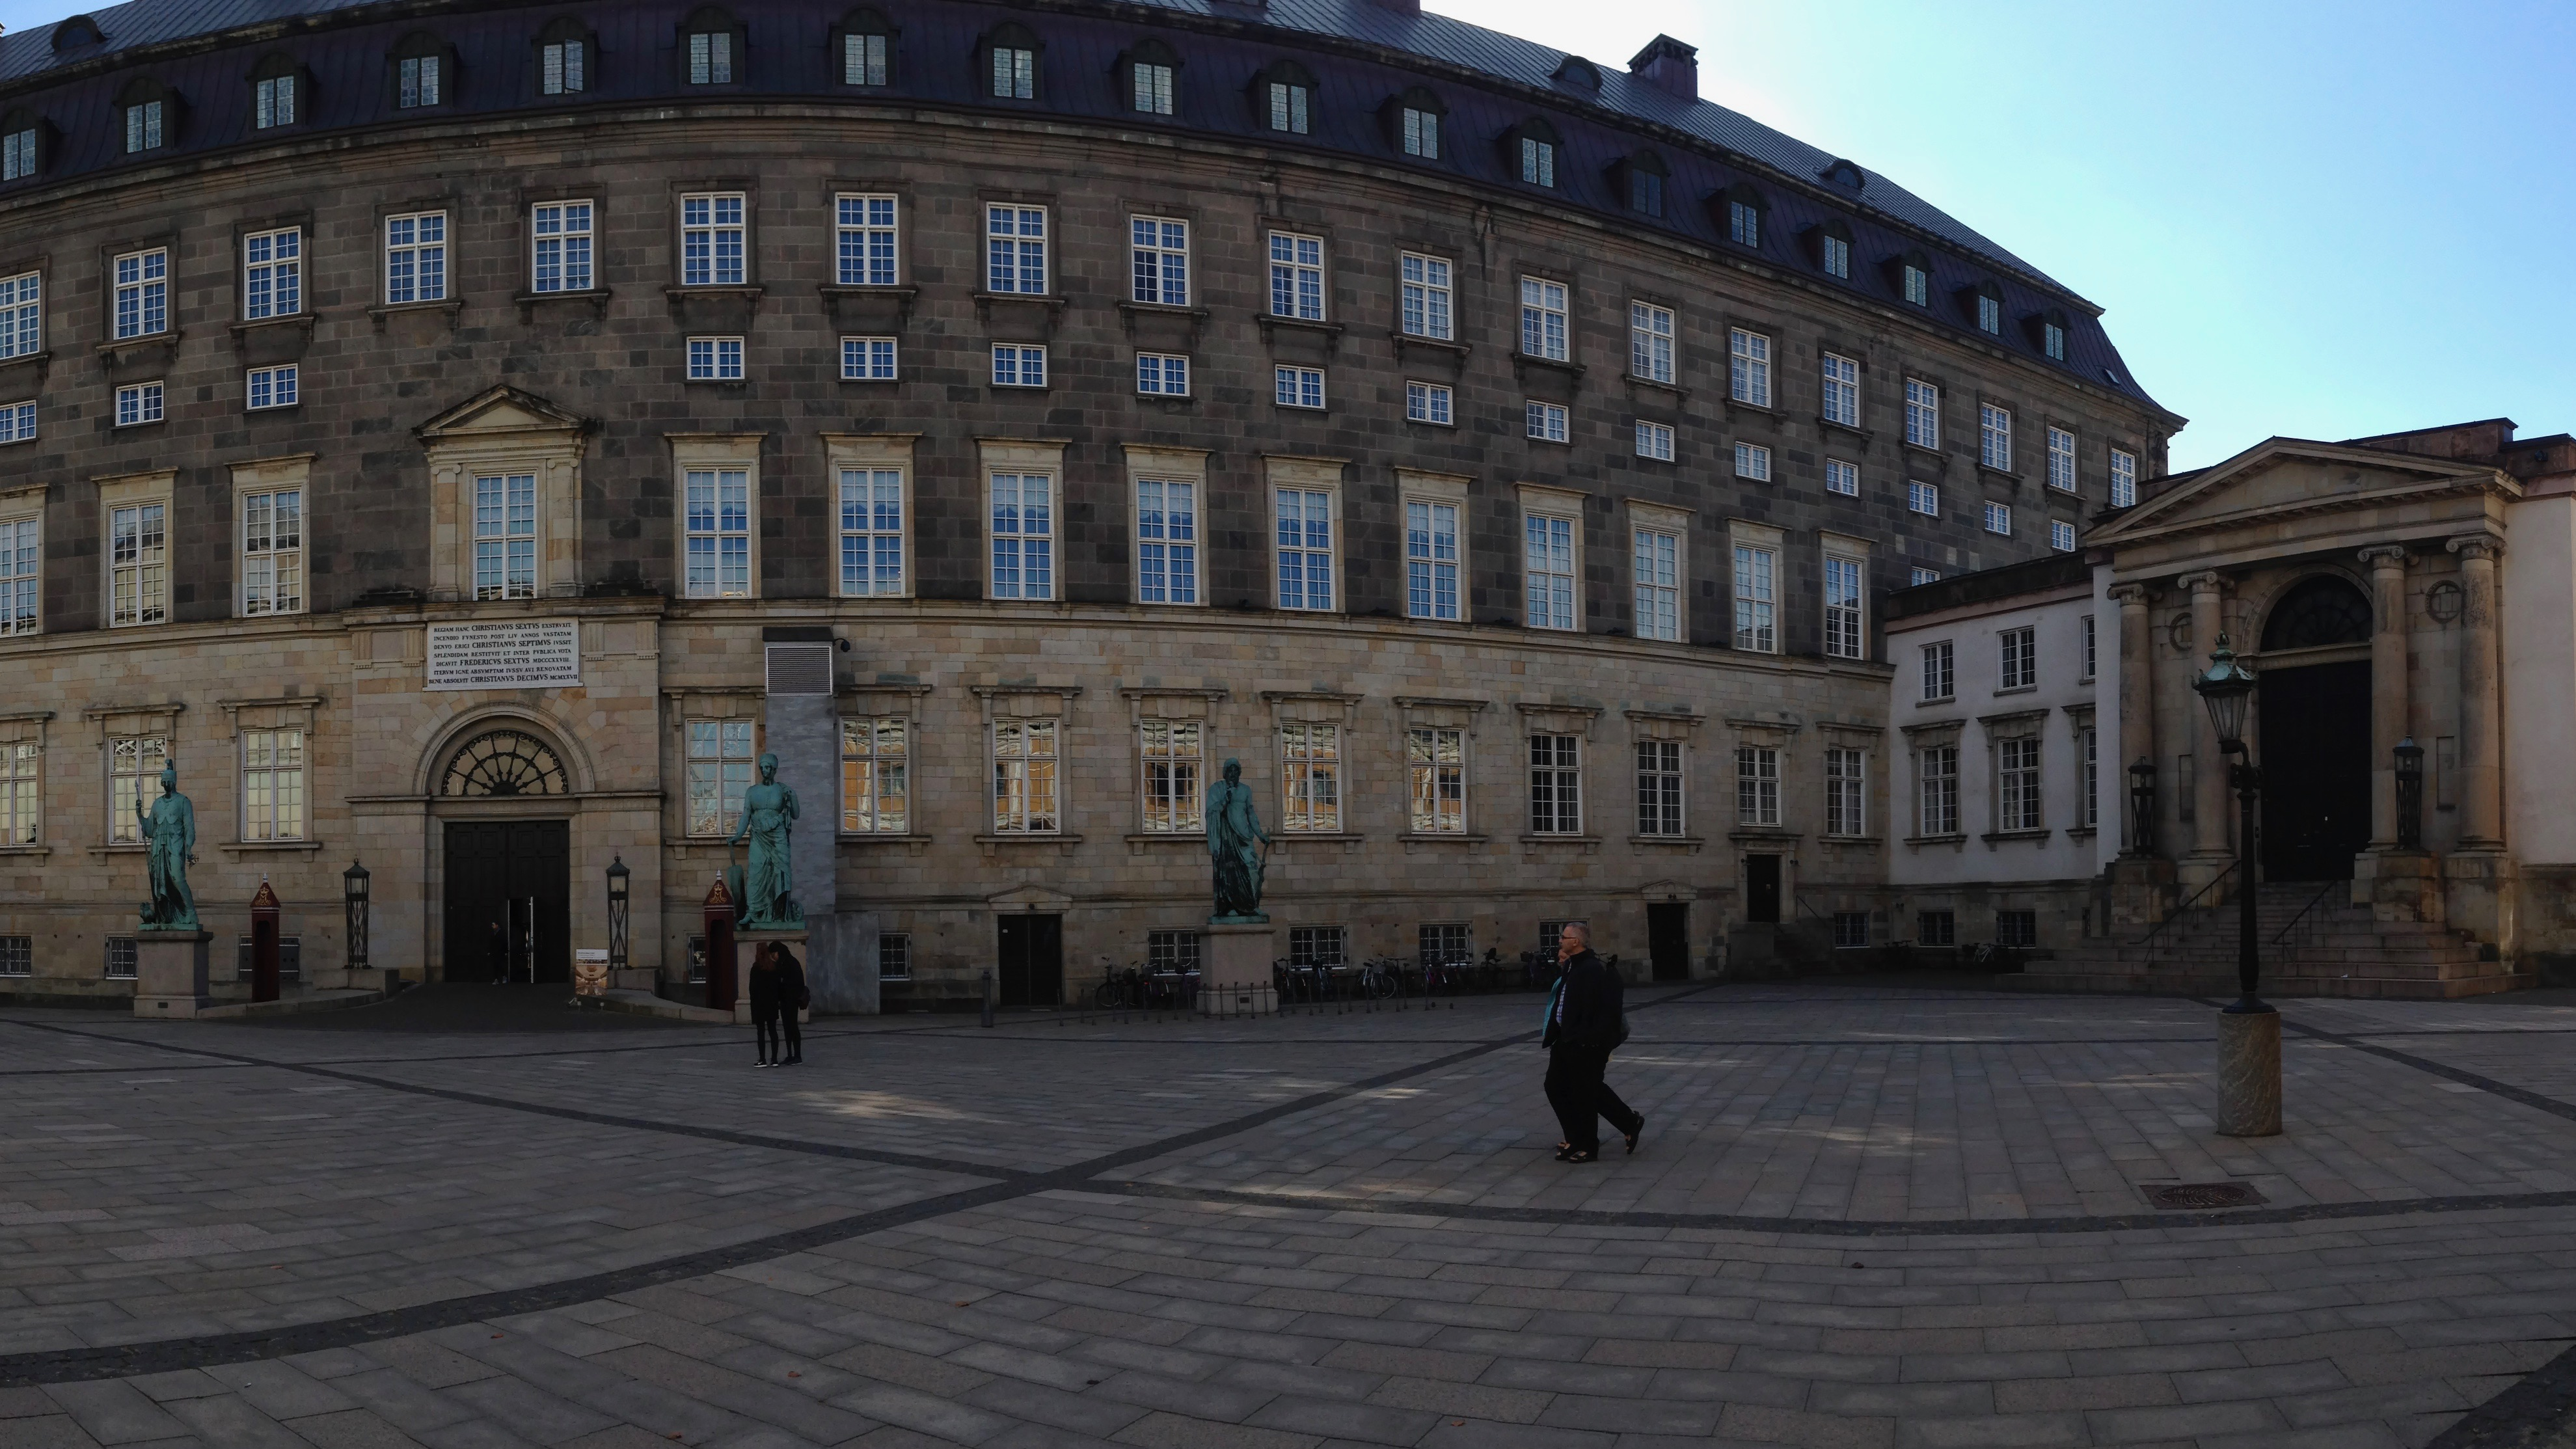 Outside Christiansborg Palace